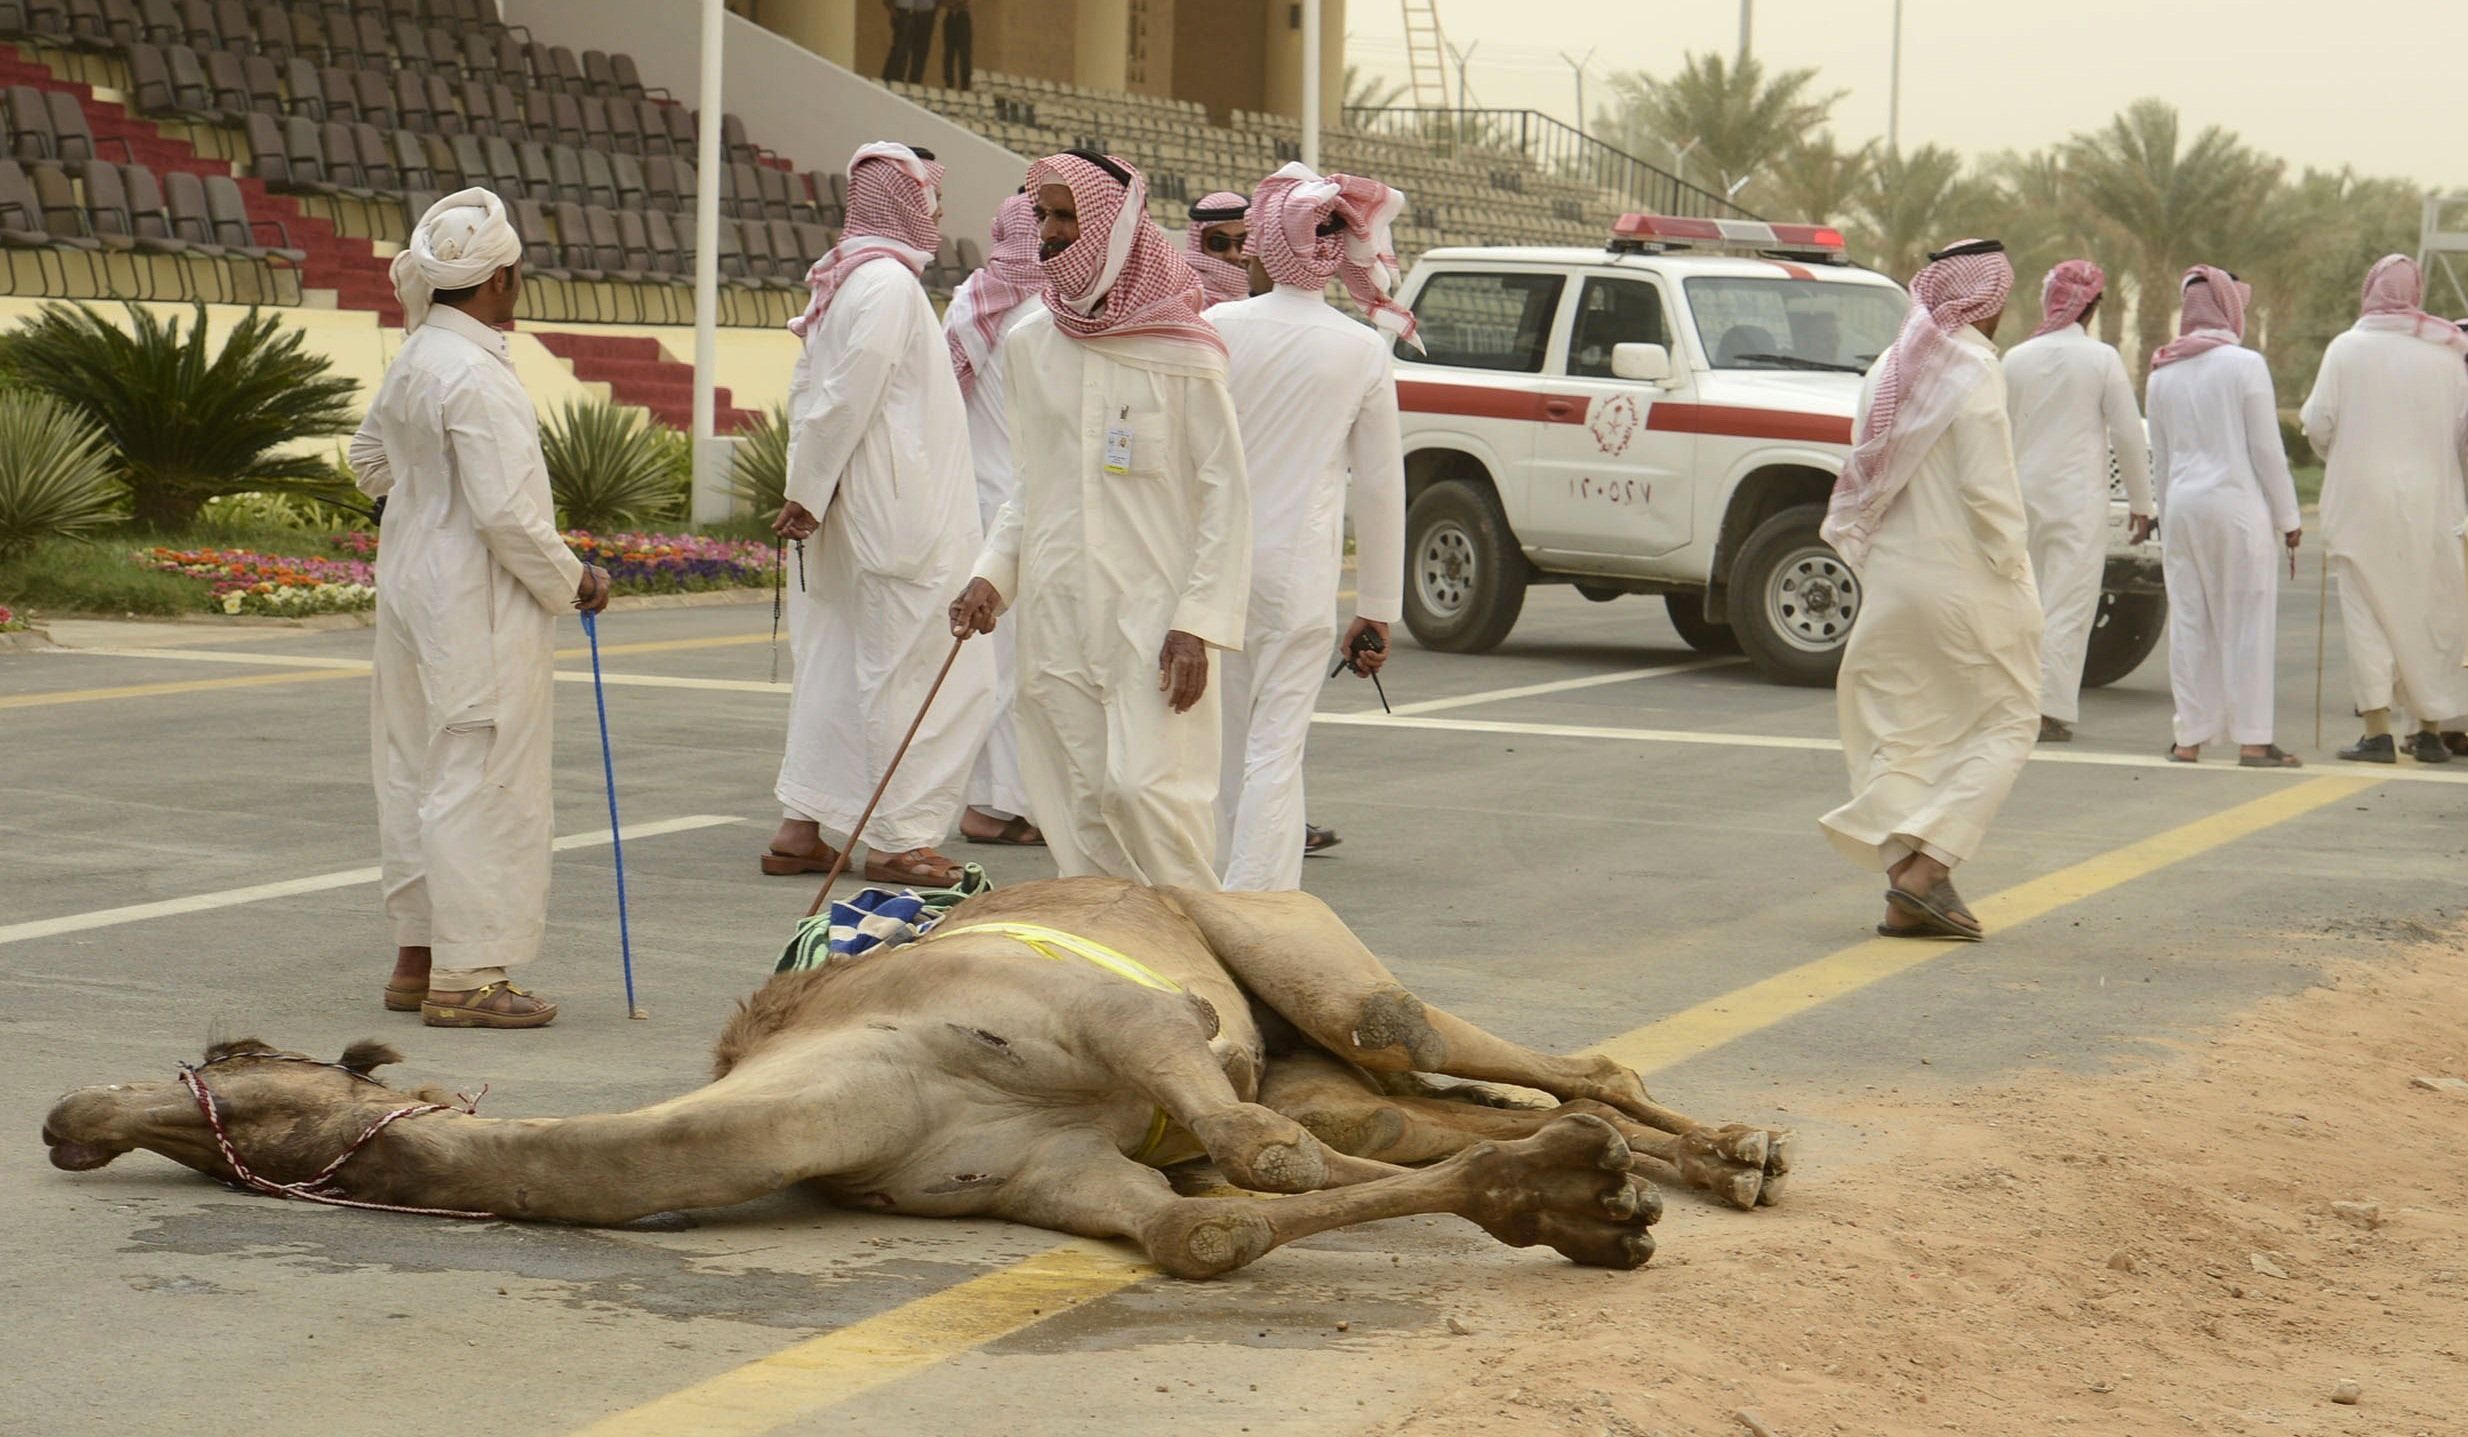 A camel collapses after competing in the 20km camel race during the opening of the Janadriya festival near Riyadh.